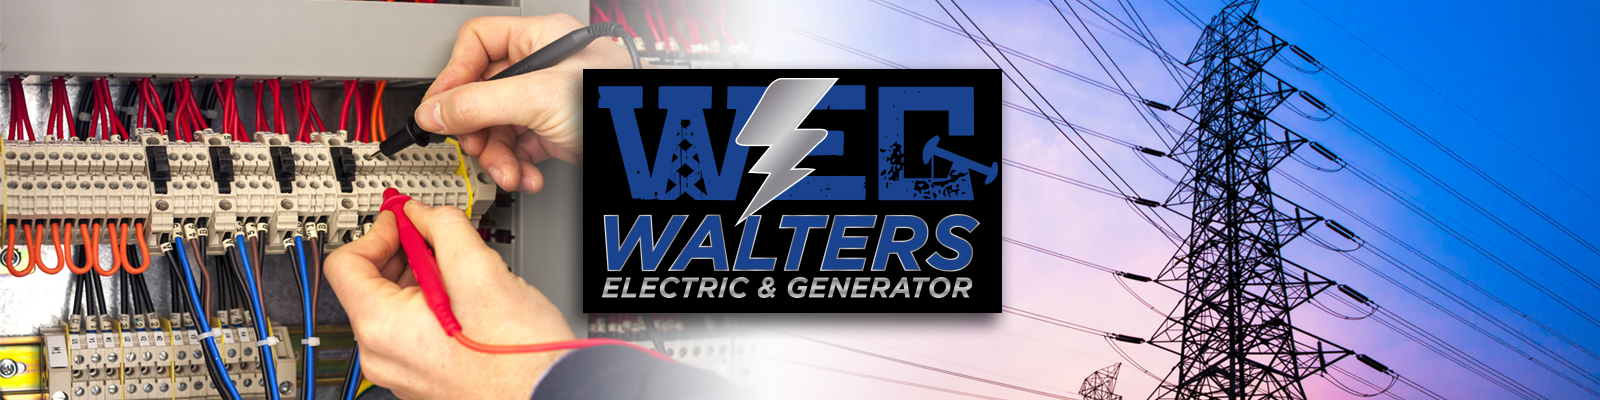 Walters Electric And Generator image 1